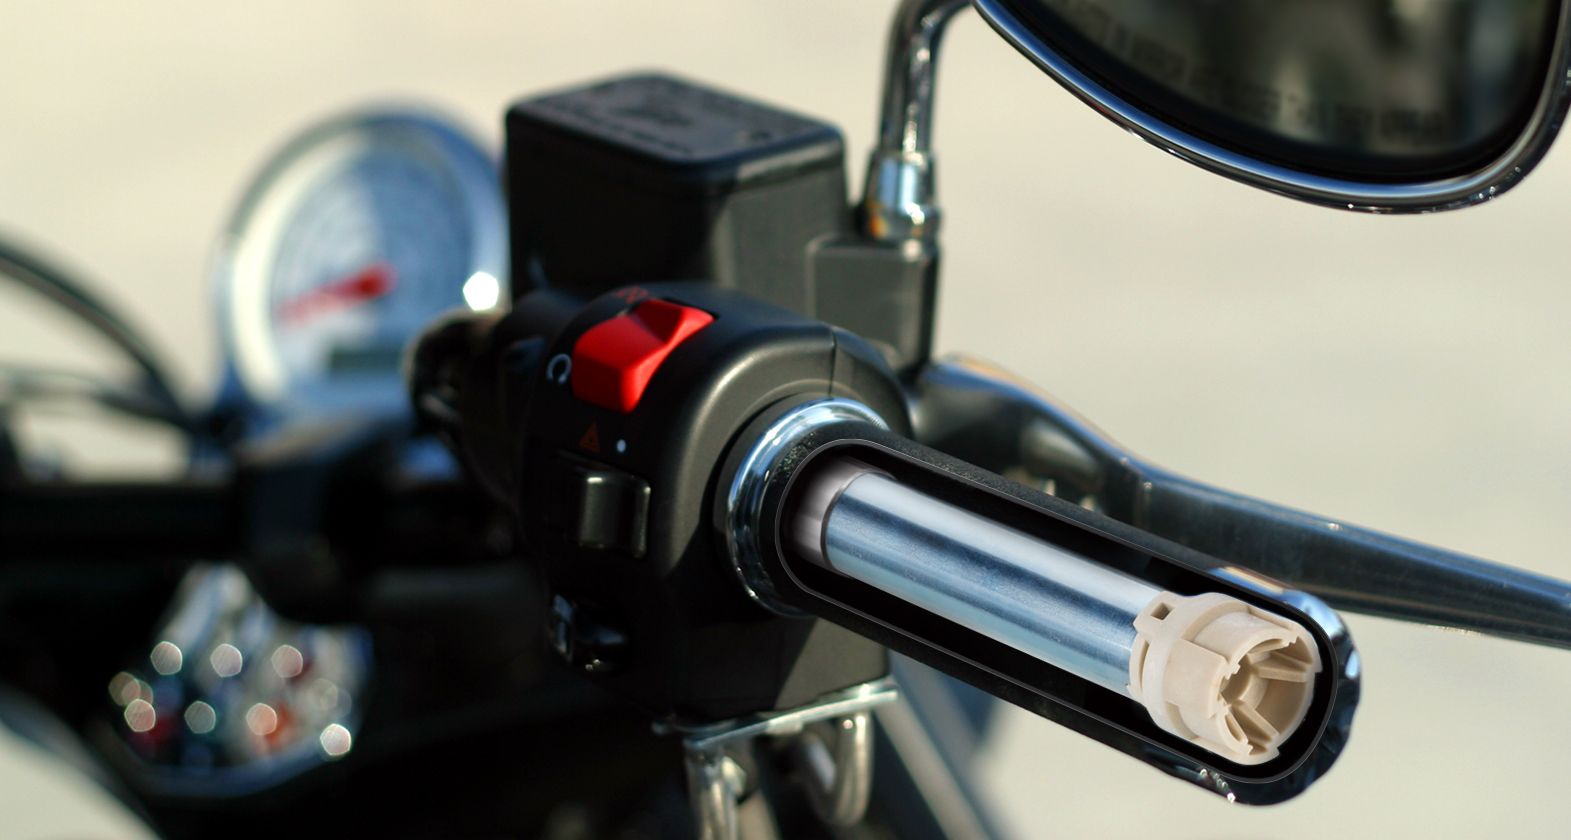 Curtiss-wright Introduces Electronic Twist Throttle